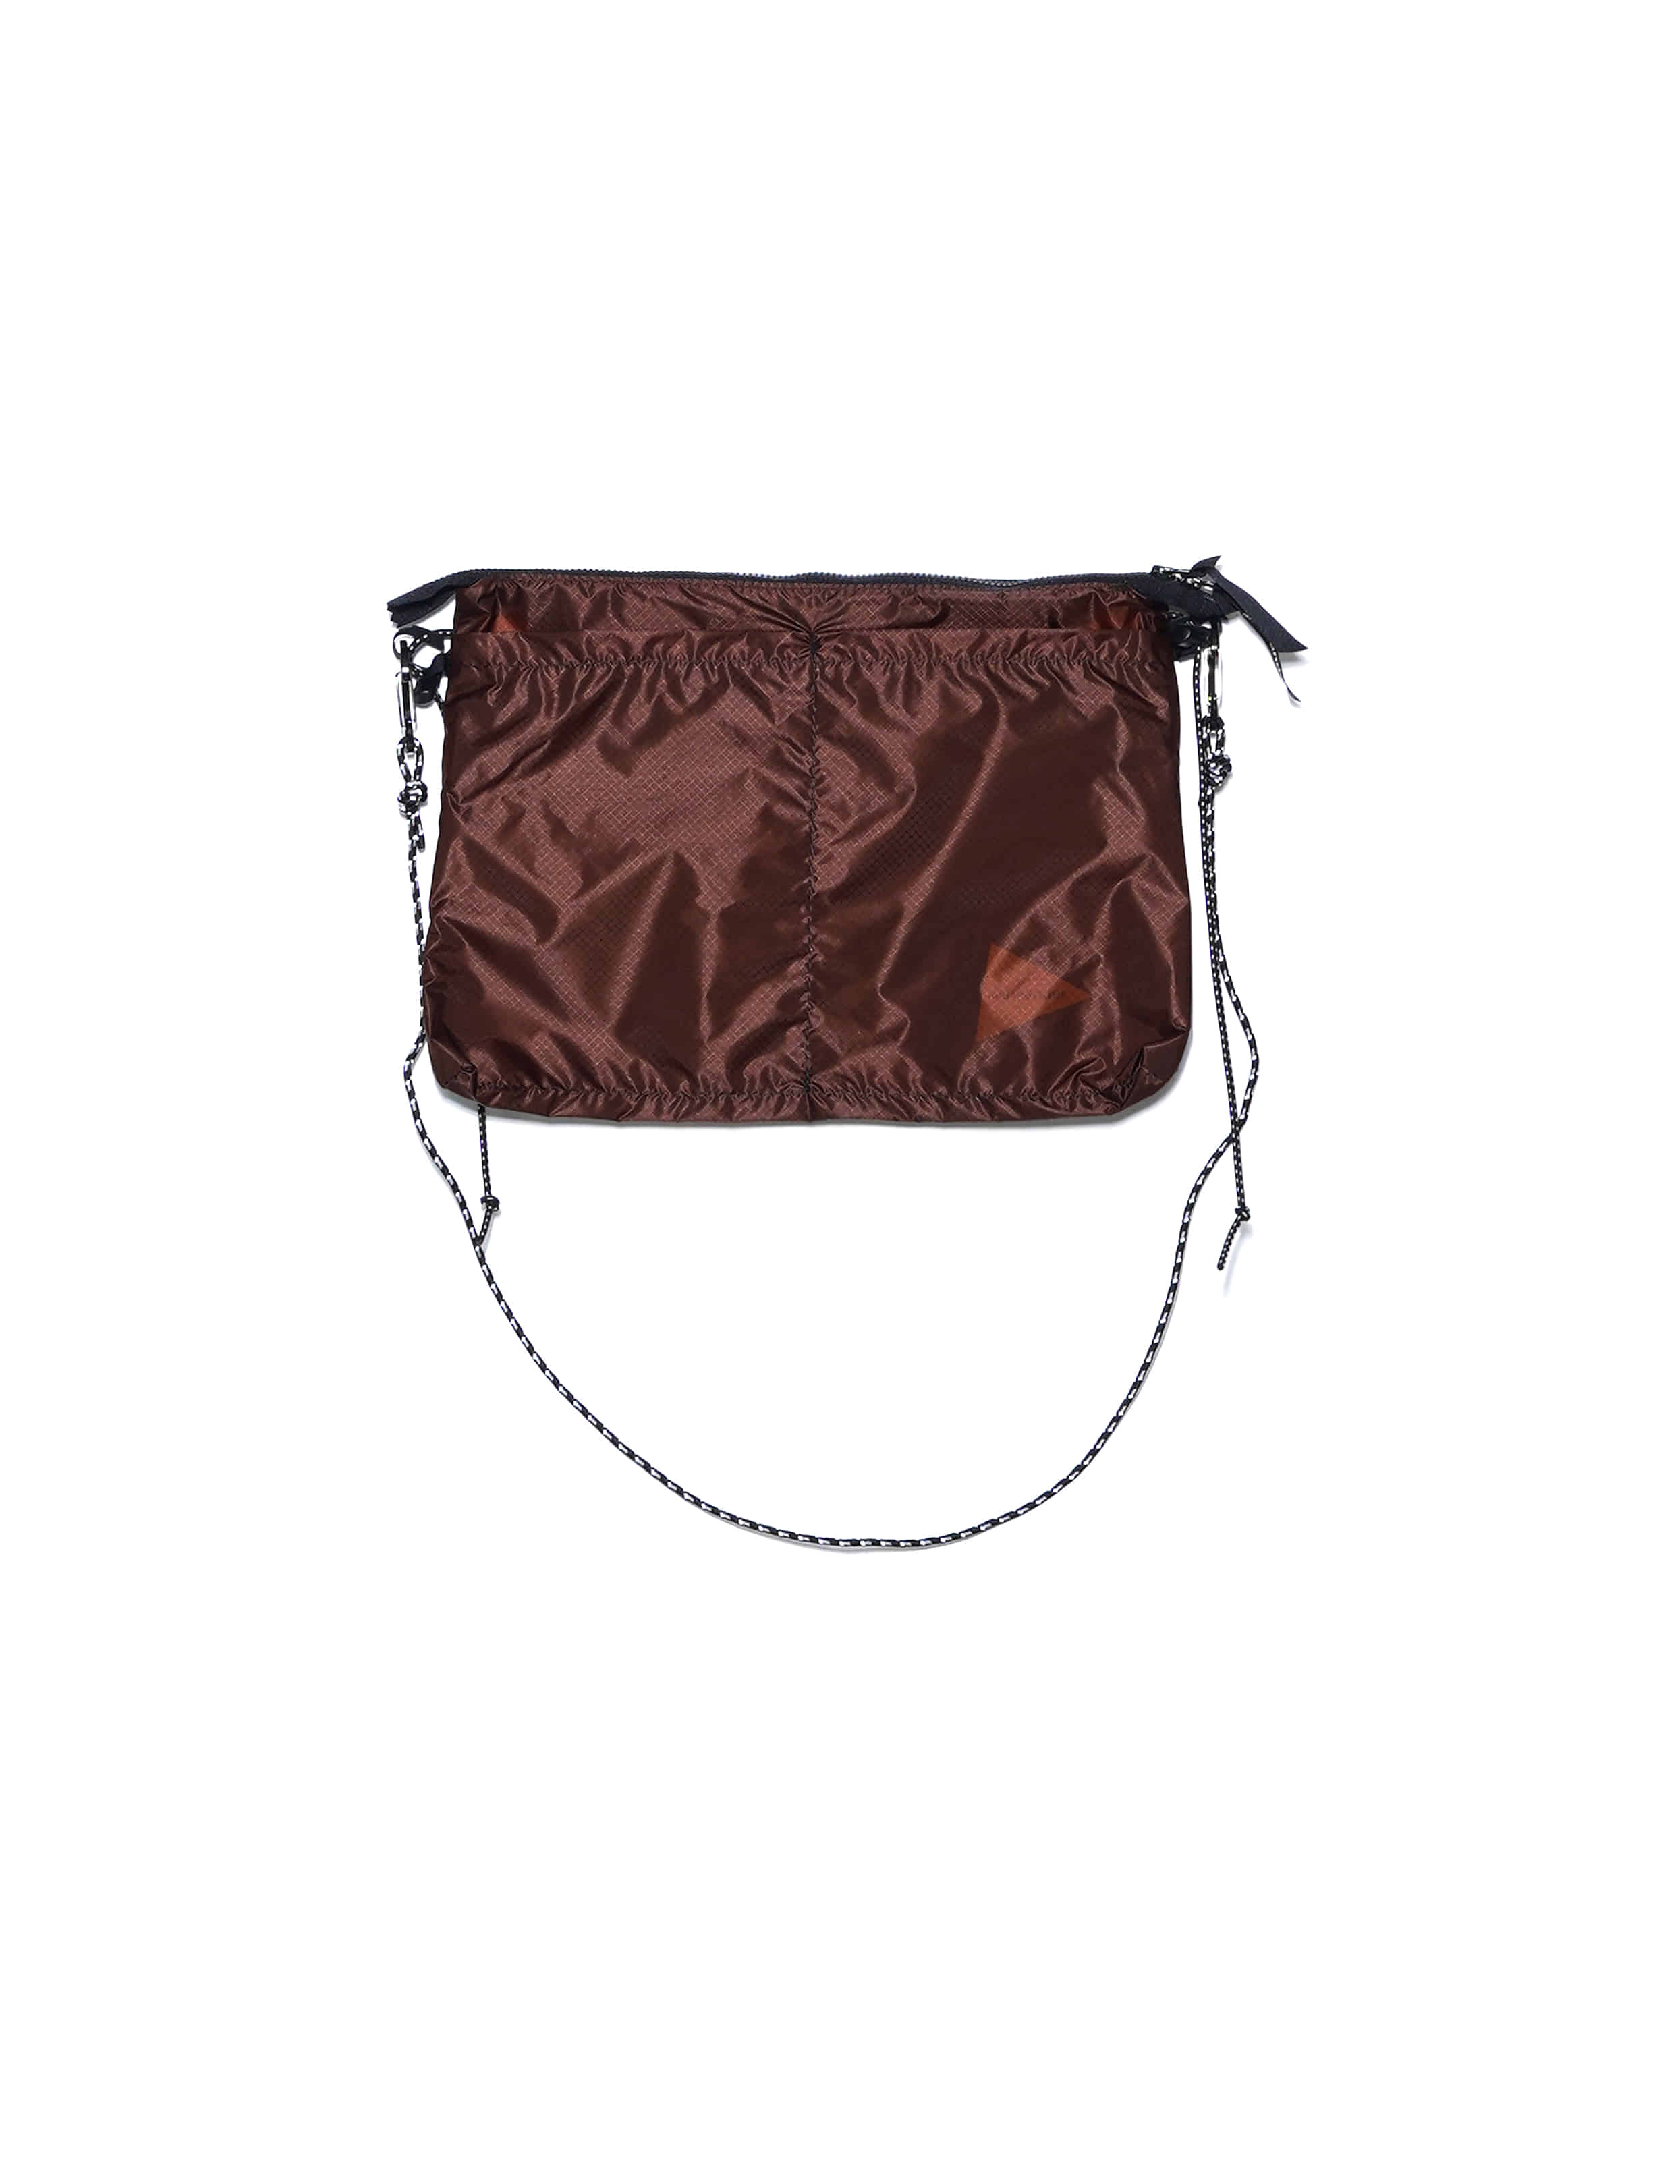 BAG / NYLON (WOVEN) (BROWN)